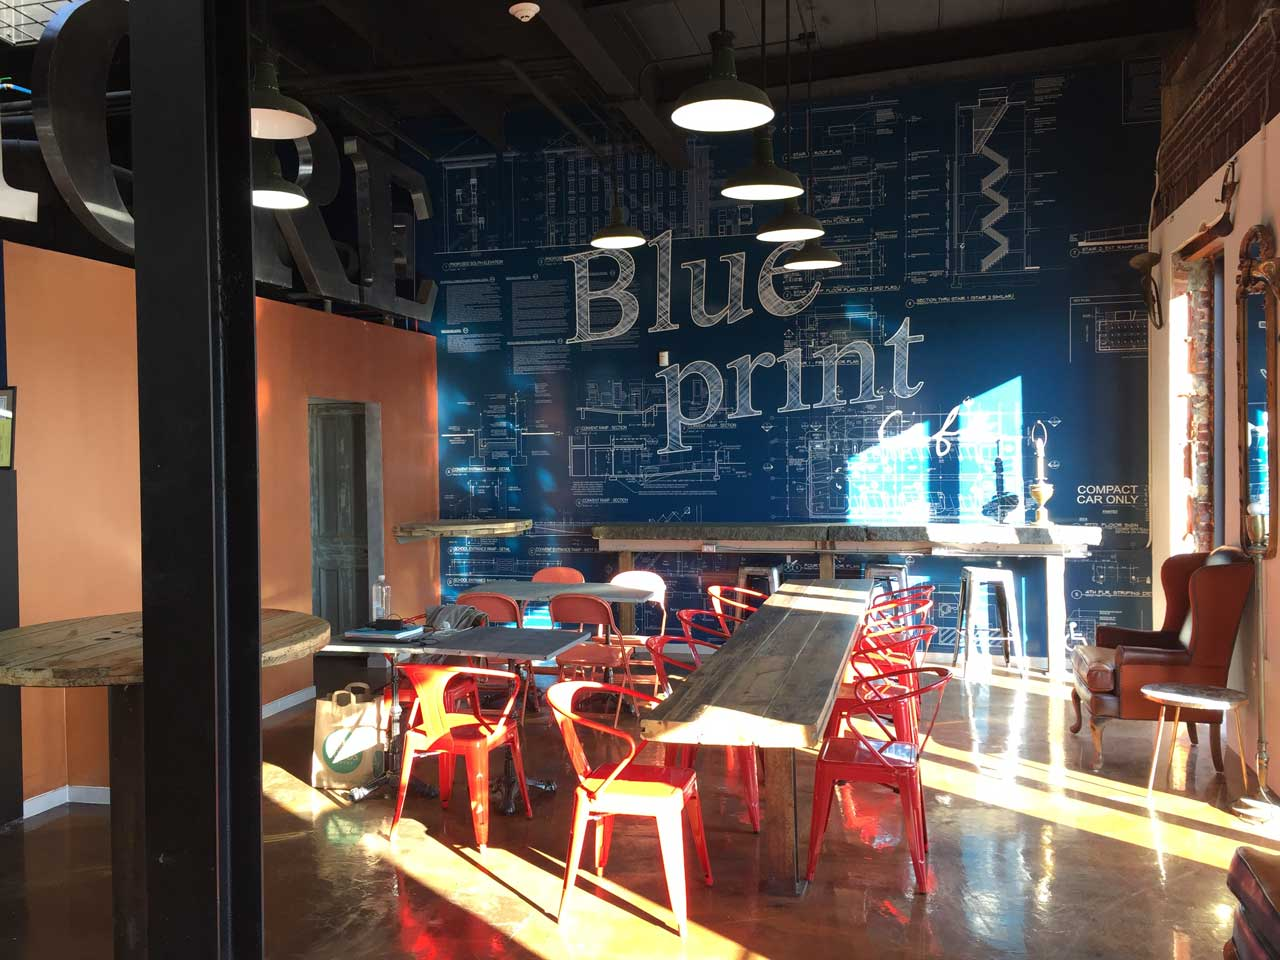 Blueprint caf opening in newark this week jersey digs blueprint cafe 369 raymond boulevard newark interior malvernweather